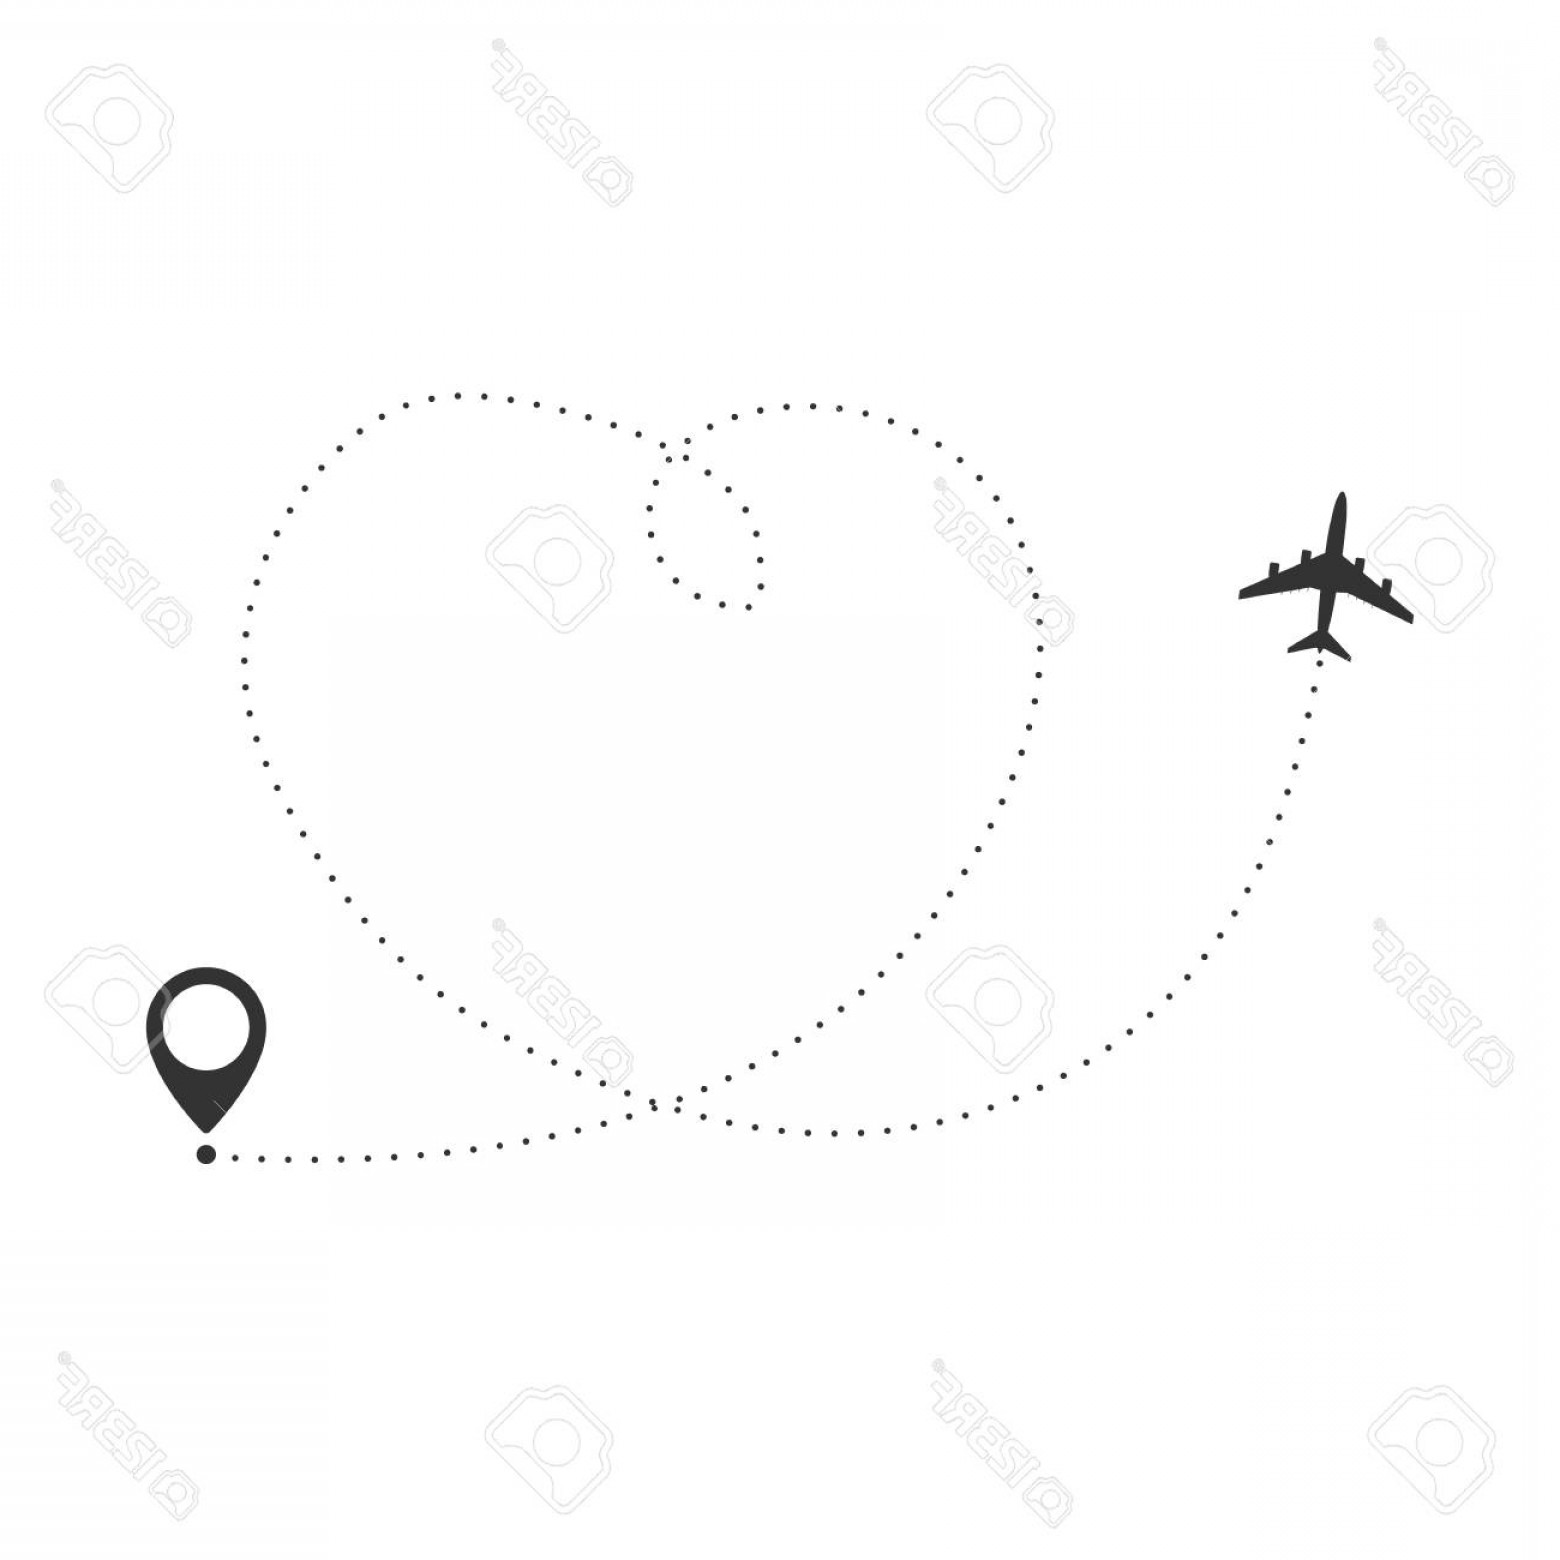 Black Heart And Plane Vector: Photostock Vector Airplane Travel Concept Plane With Destinations Points And Dash Route Line Vector Silhouette Illustr